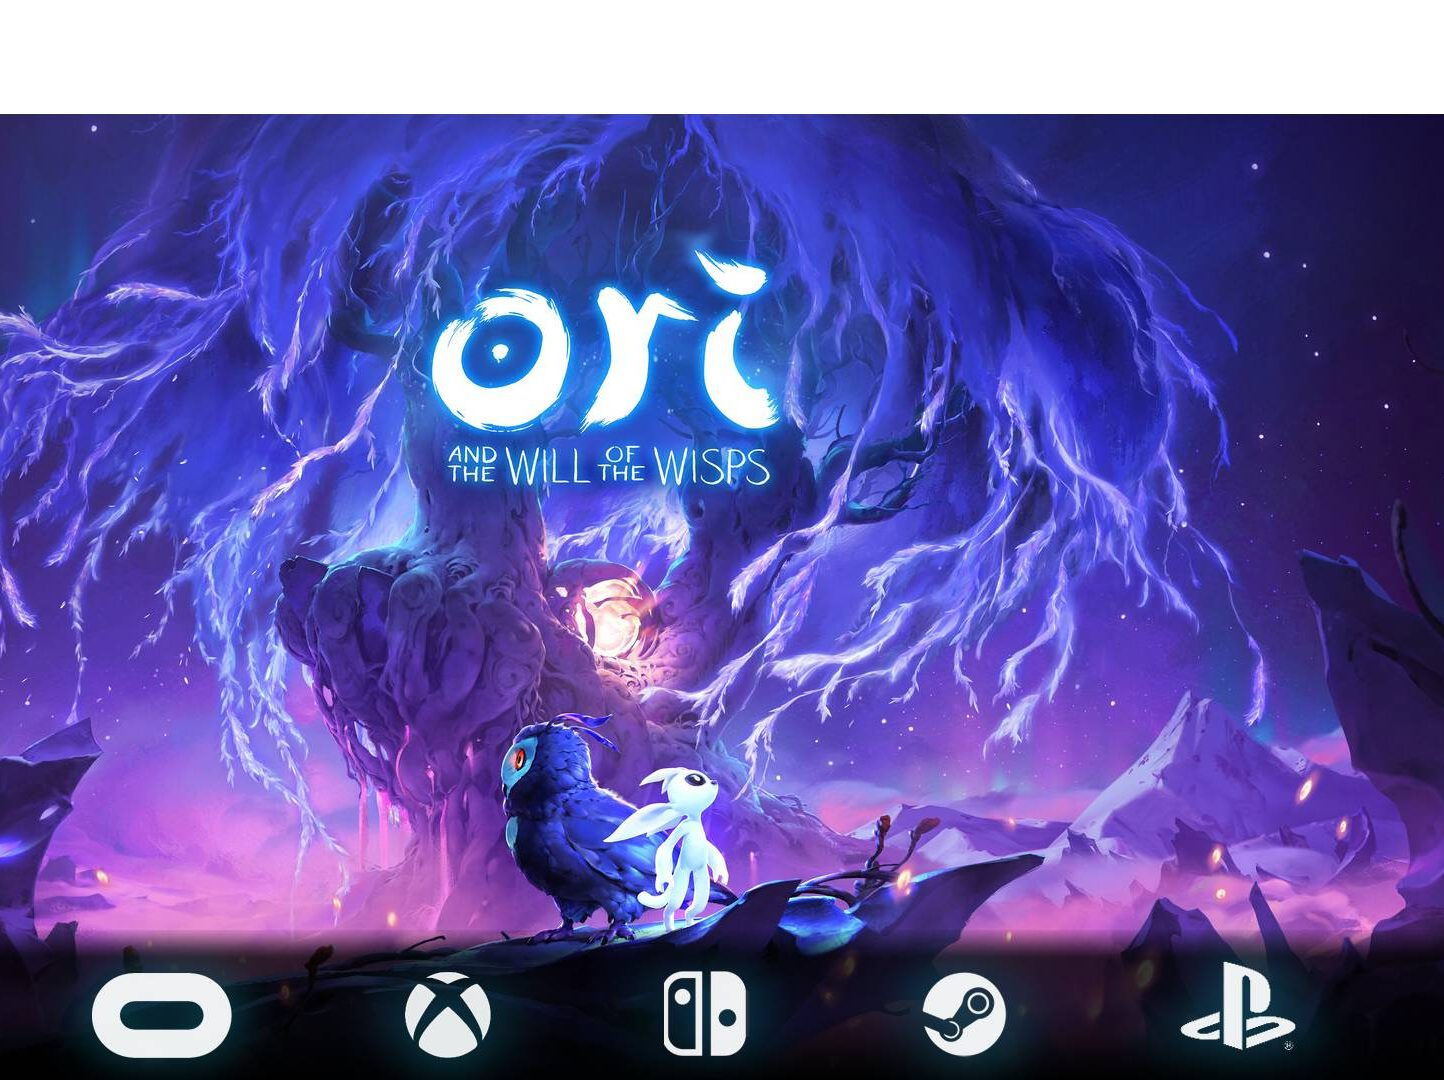 How Ukrainian team Stan's Assets from KAPPS helped to create AAA-game Ori and the Will of the Wisps